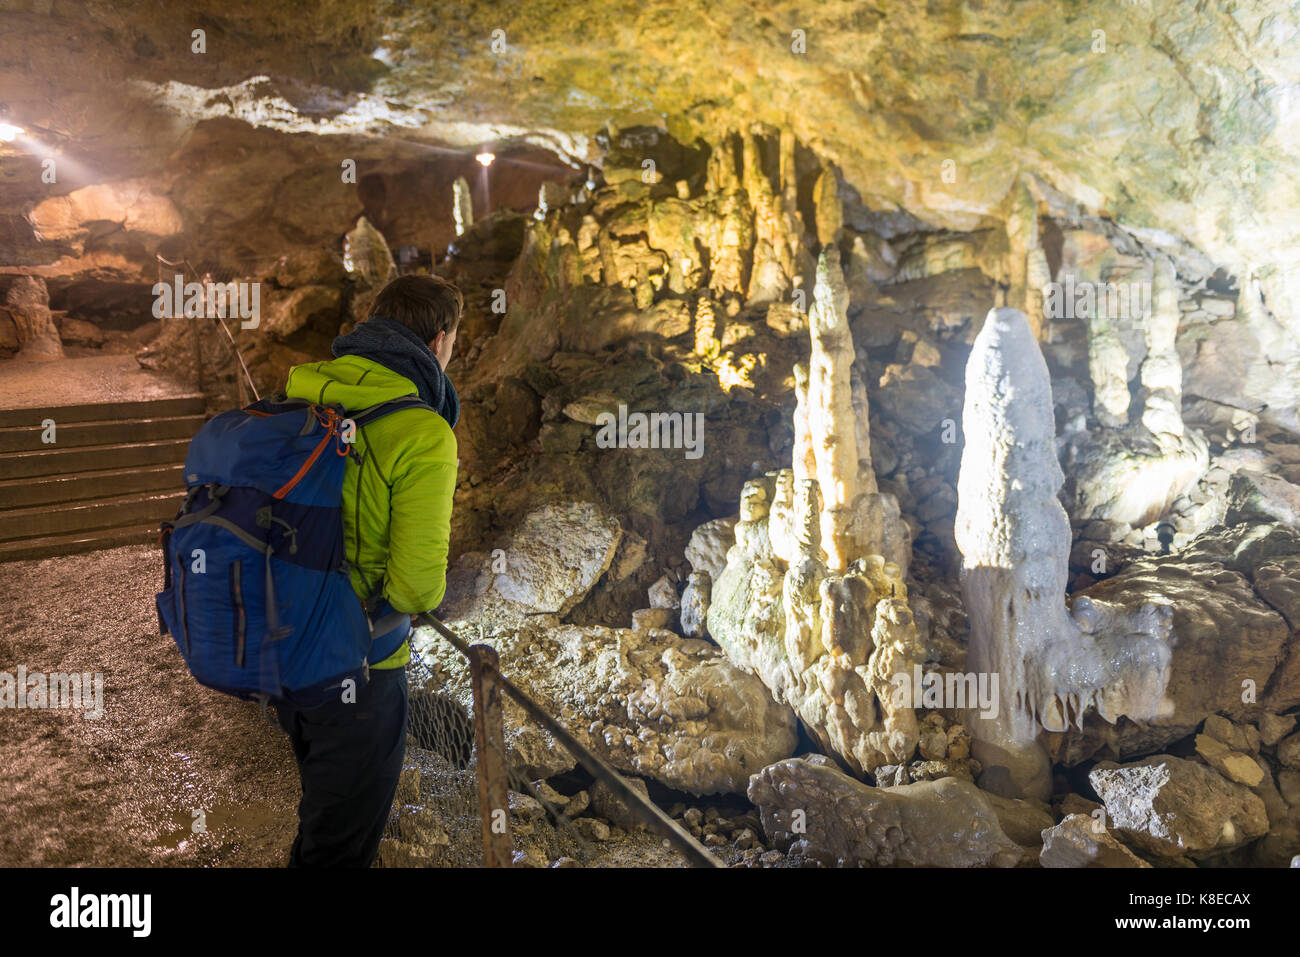 Tourist in Nebula Cave, stalagmites and stalactites, Sonnenbühl, Baden-Württemberg, Germany - Stock Image